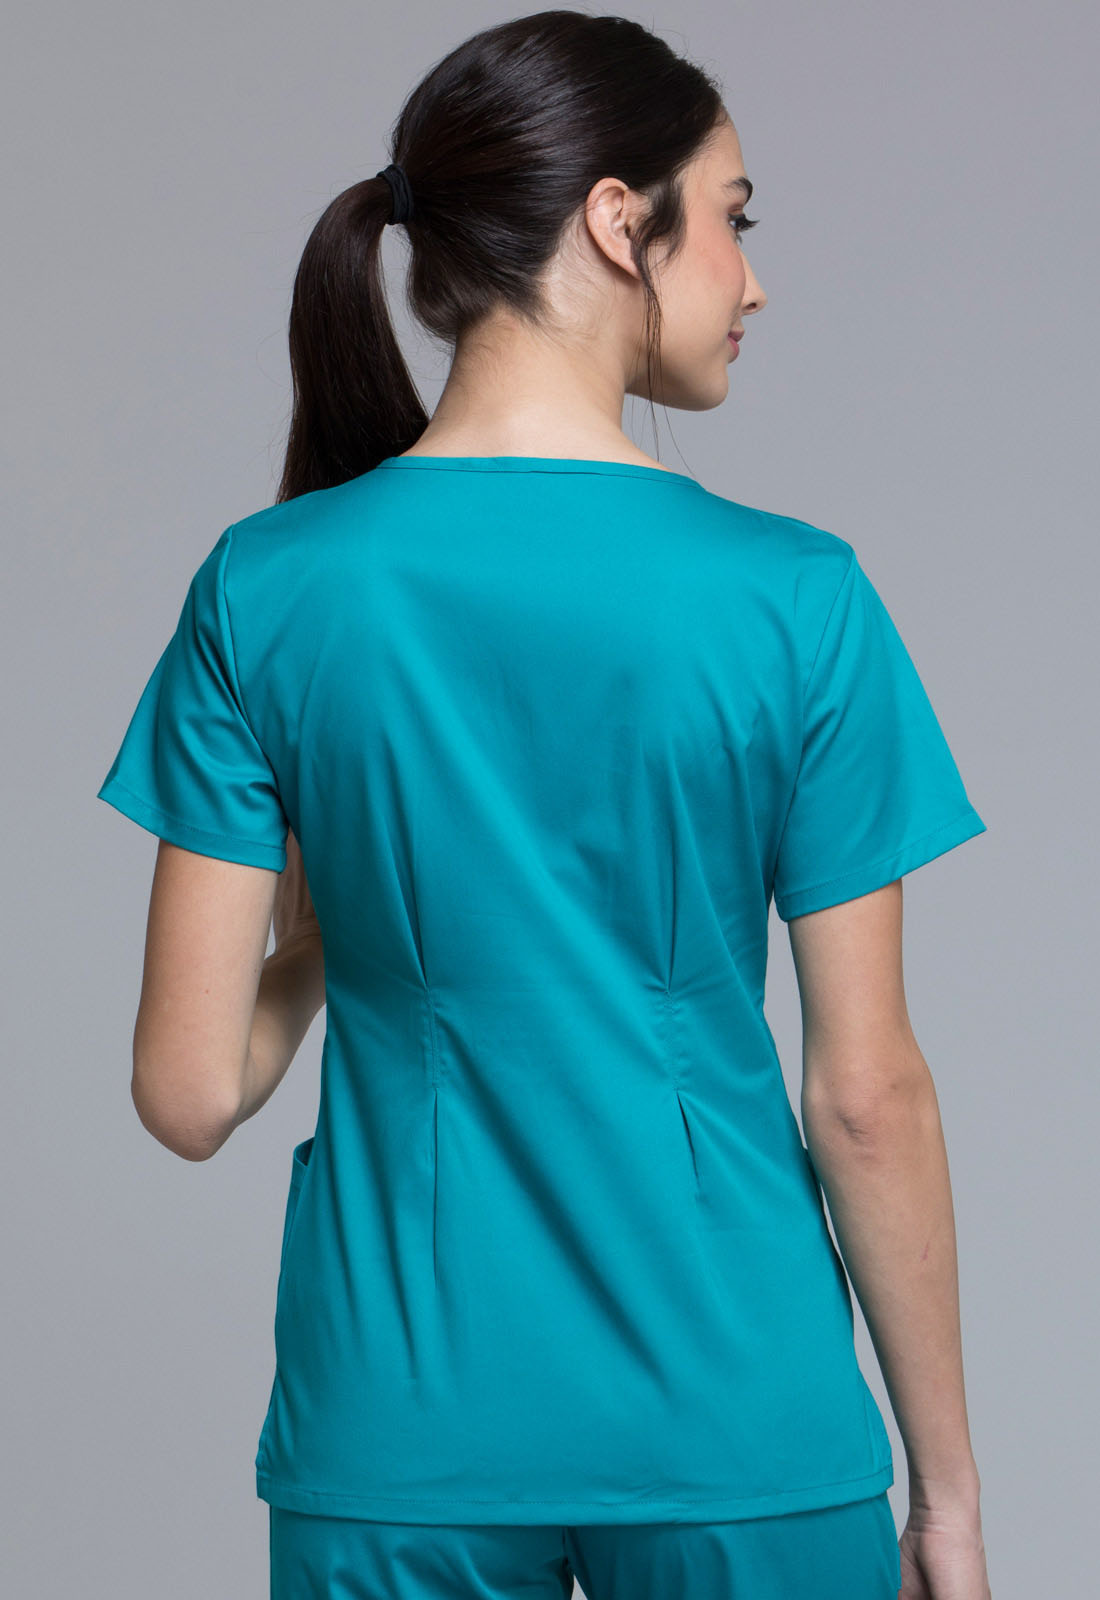 CHEROKEE Teal Crossover V-Neck Top 1999